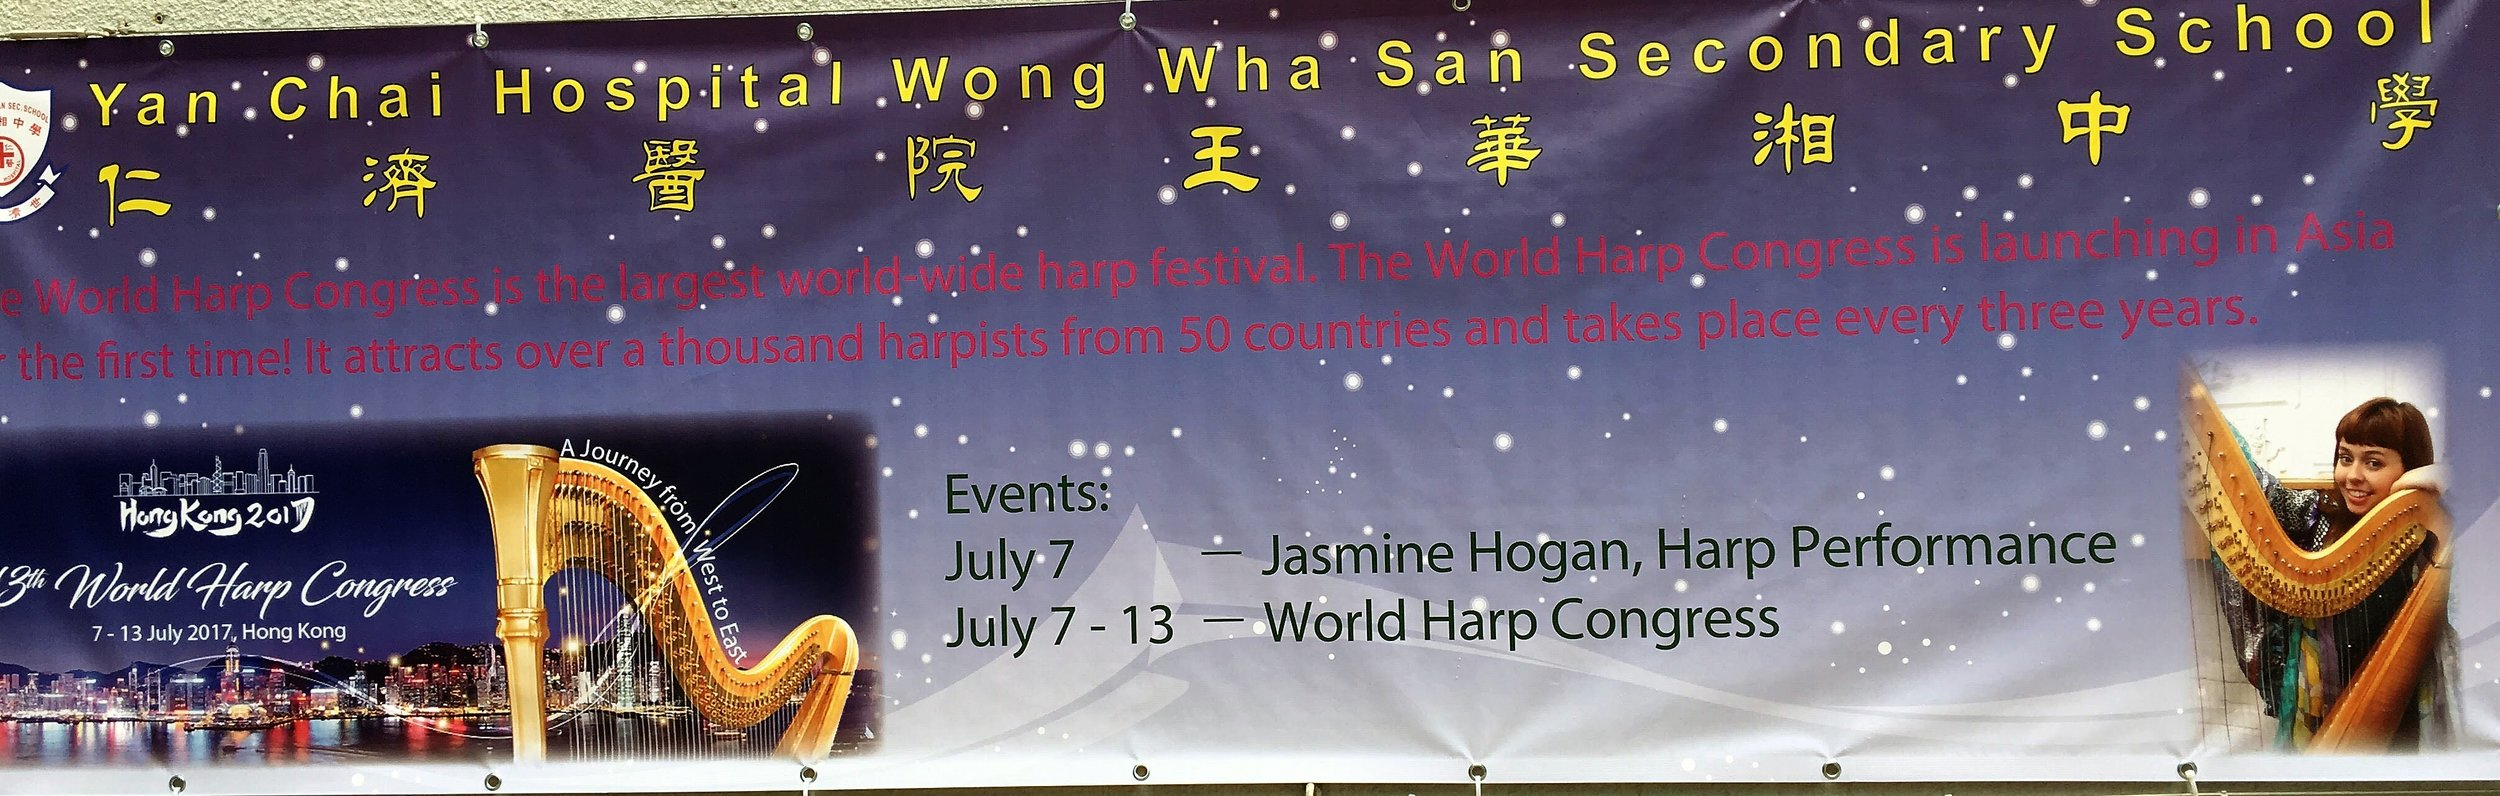 I was very honored to perform for graduates and harp students at the Yan Chai Hospital Wong Wha San Secondary School